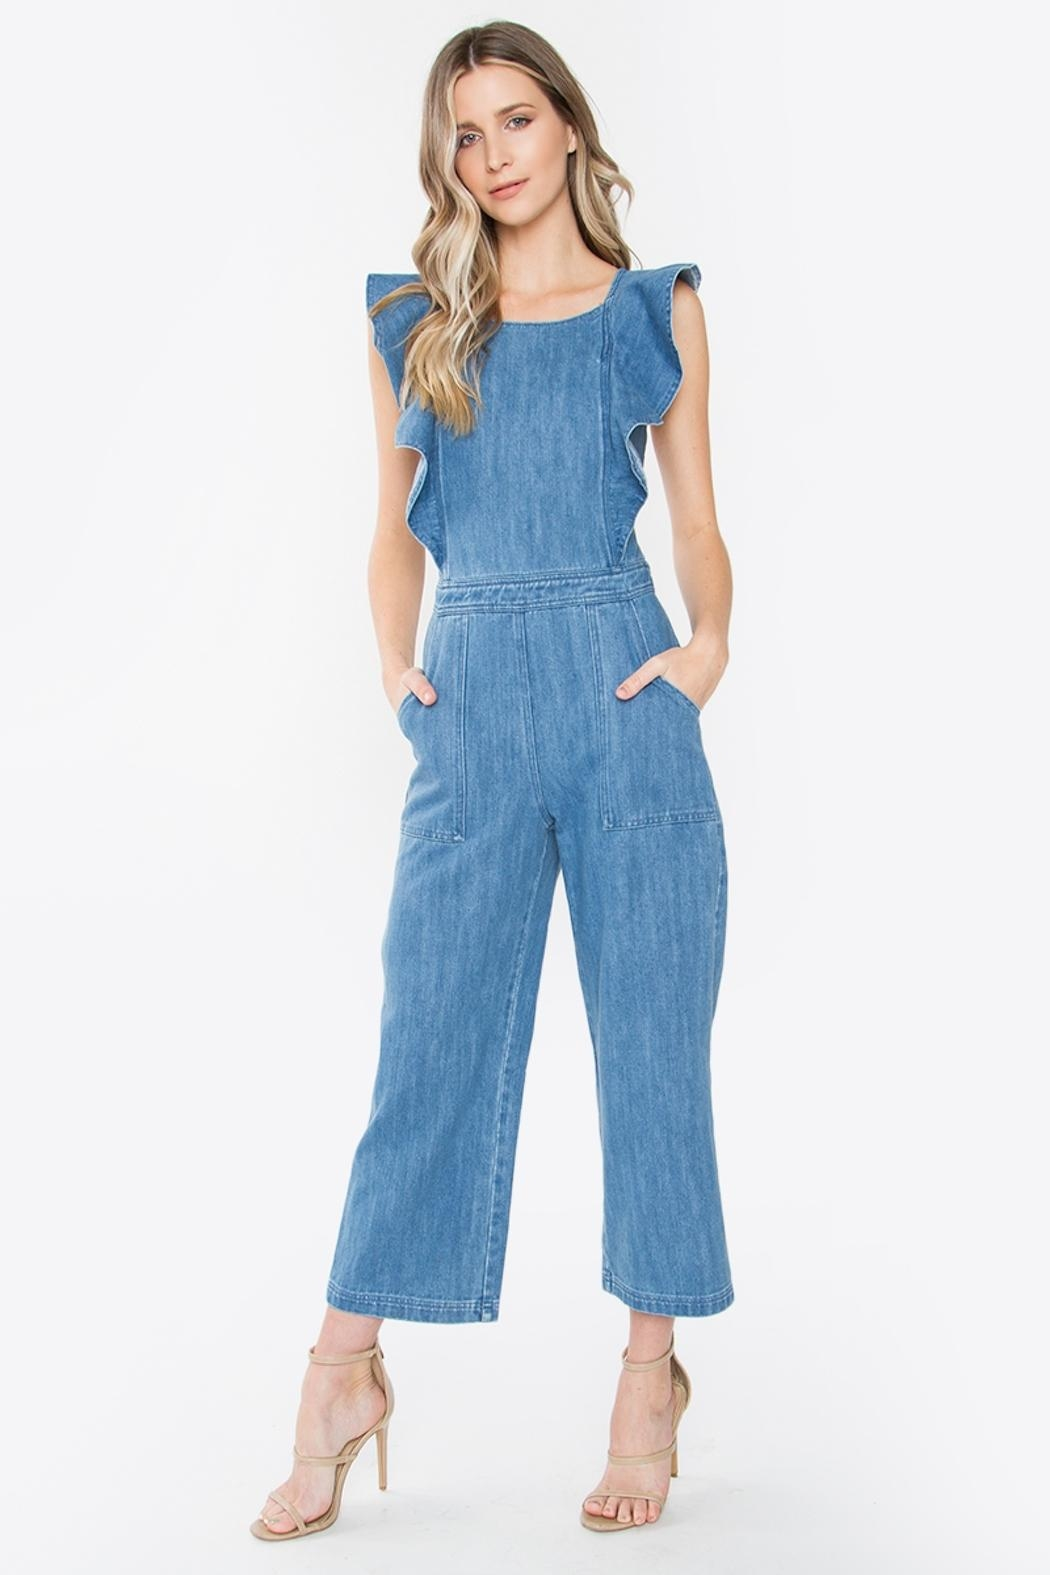 Sugar Lips Denim Jumpsuit - Main Image